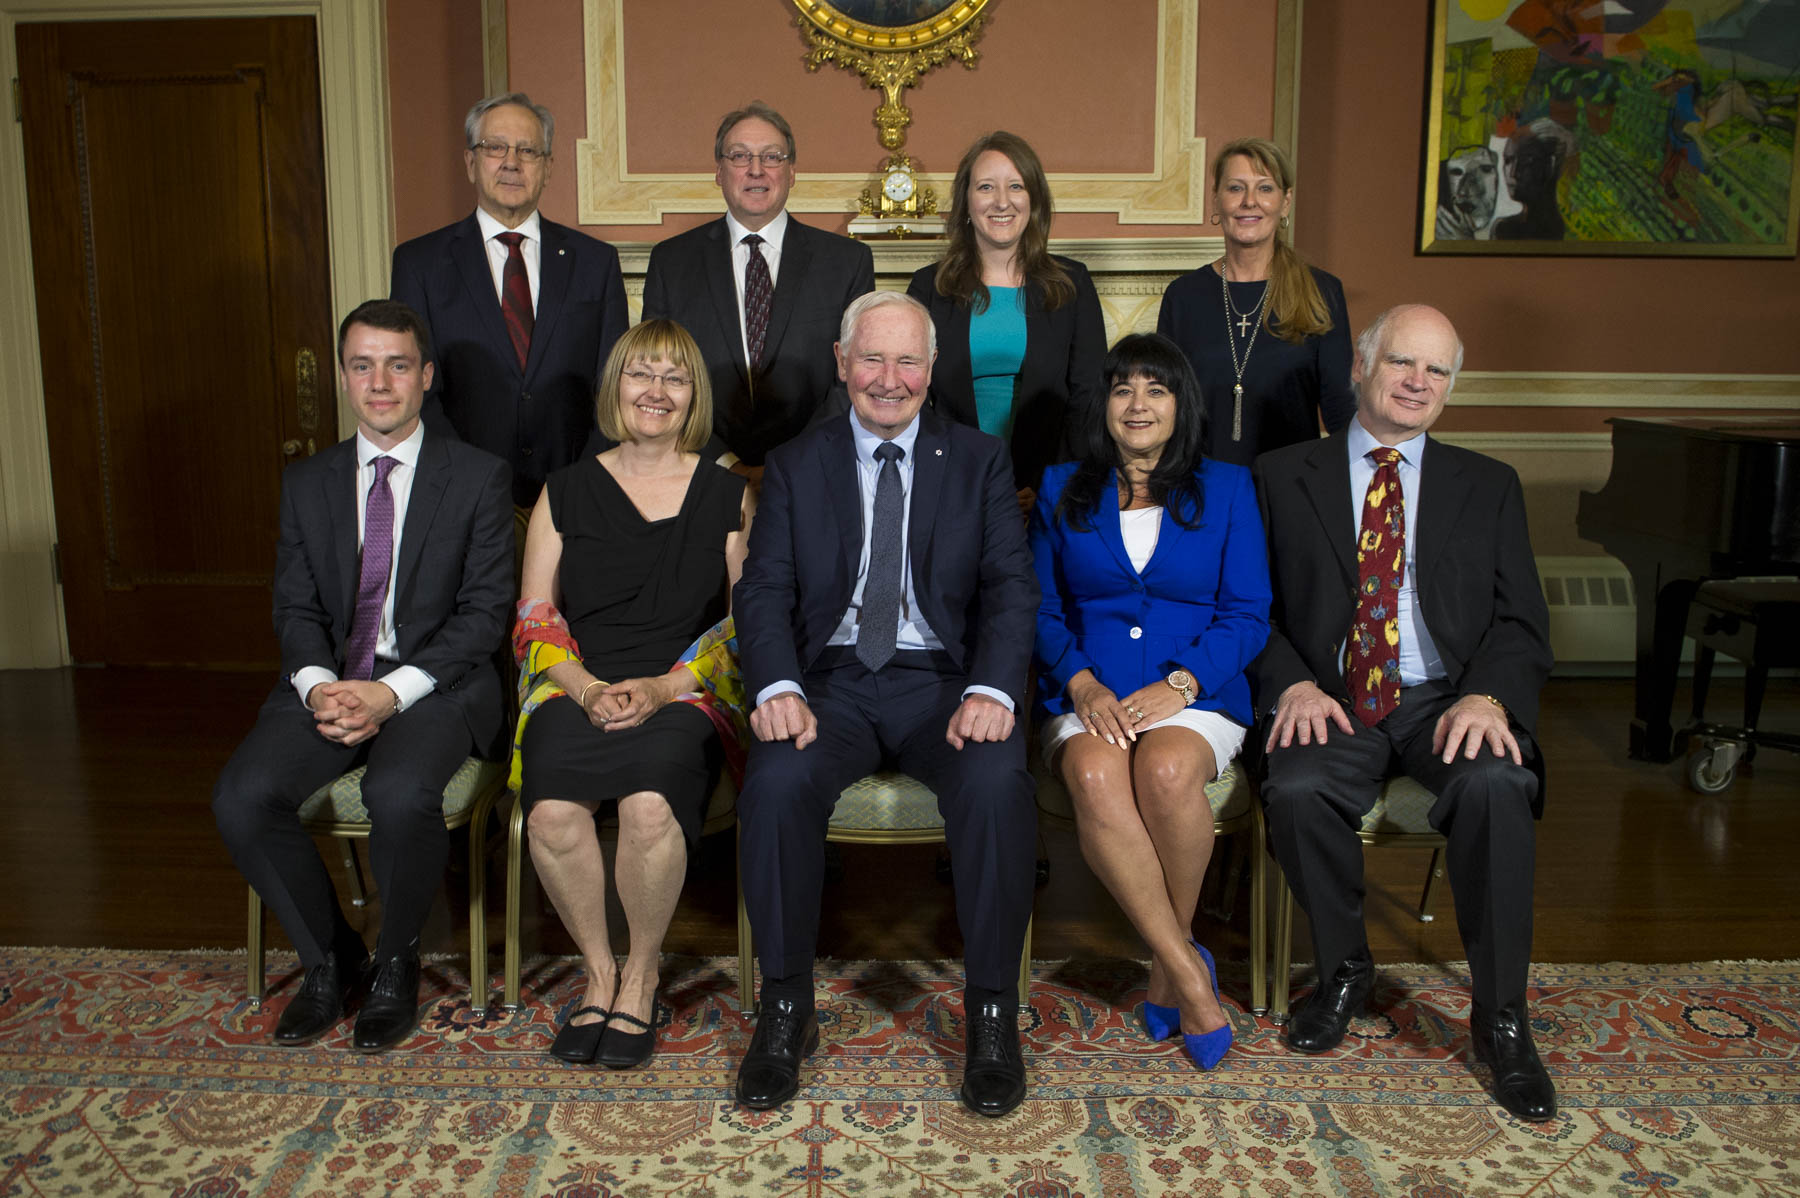 Winners are selected through a two-stage, merit-based selection process. The selection process is managed by the Canada Foundation for Innovation while the execution of all aspects of the program is overseen by the Office of the Secretary to the Governor General, working in close collaboration with the Rideau Hall Foundation.